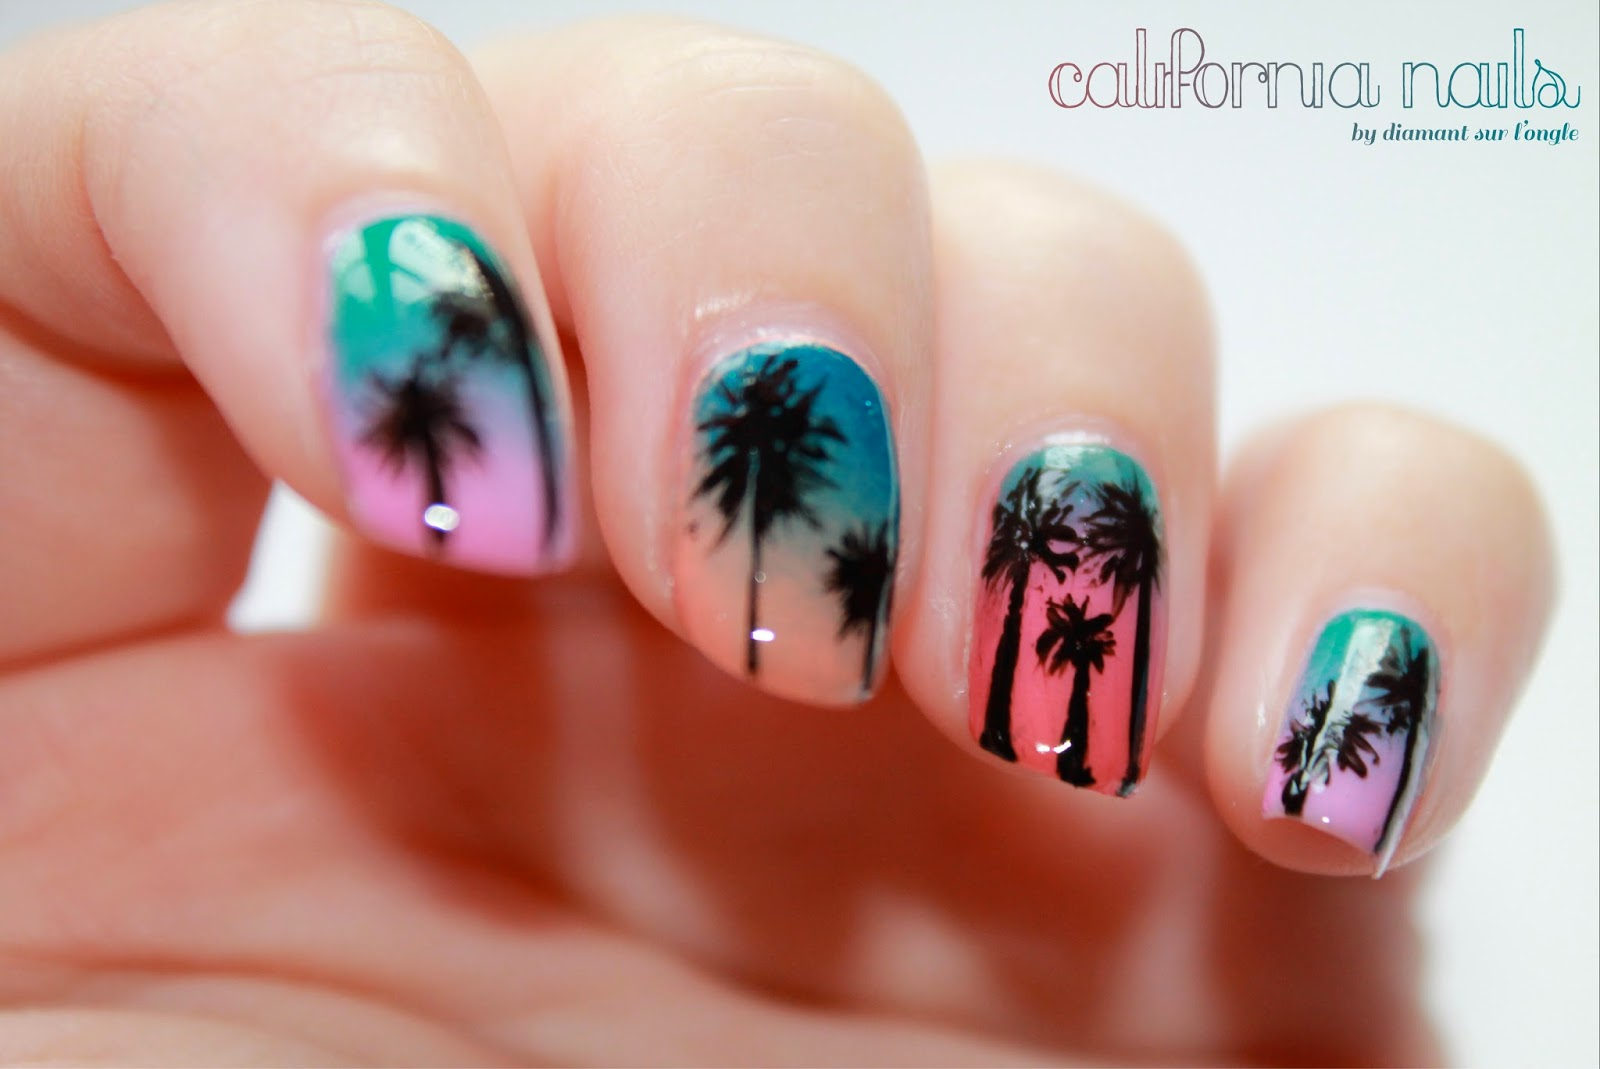 http://diamantsurlongle.blogspot.fr/2013/06/california-nails.html